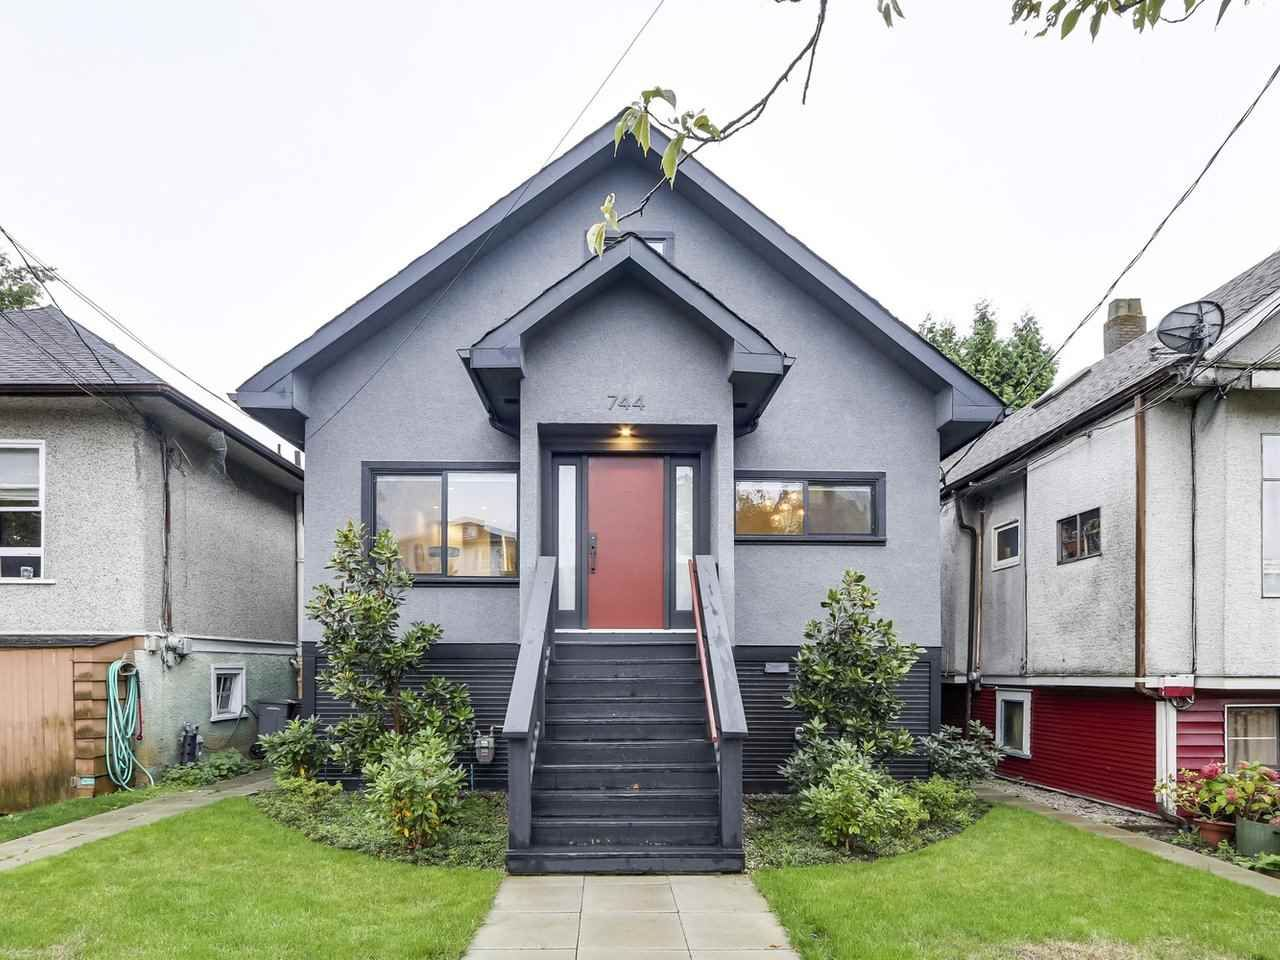 Main Photo: 744 E 24th Avenue in Vancouver: Fraserview VE House for sale (Vancouver East)  : MLS®# r2316925